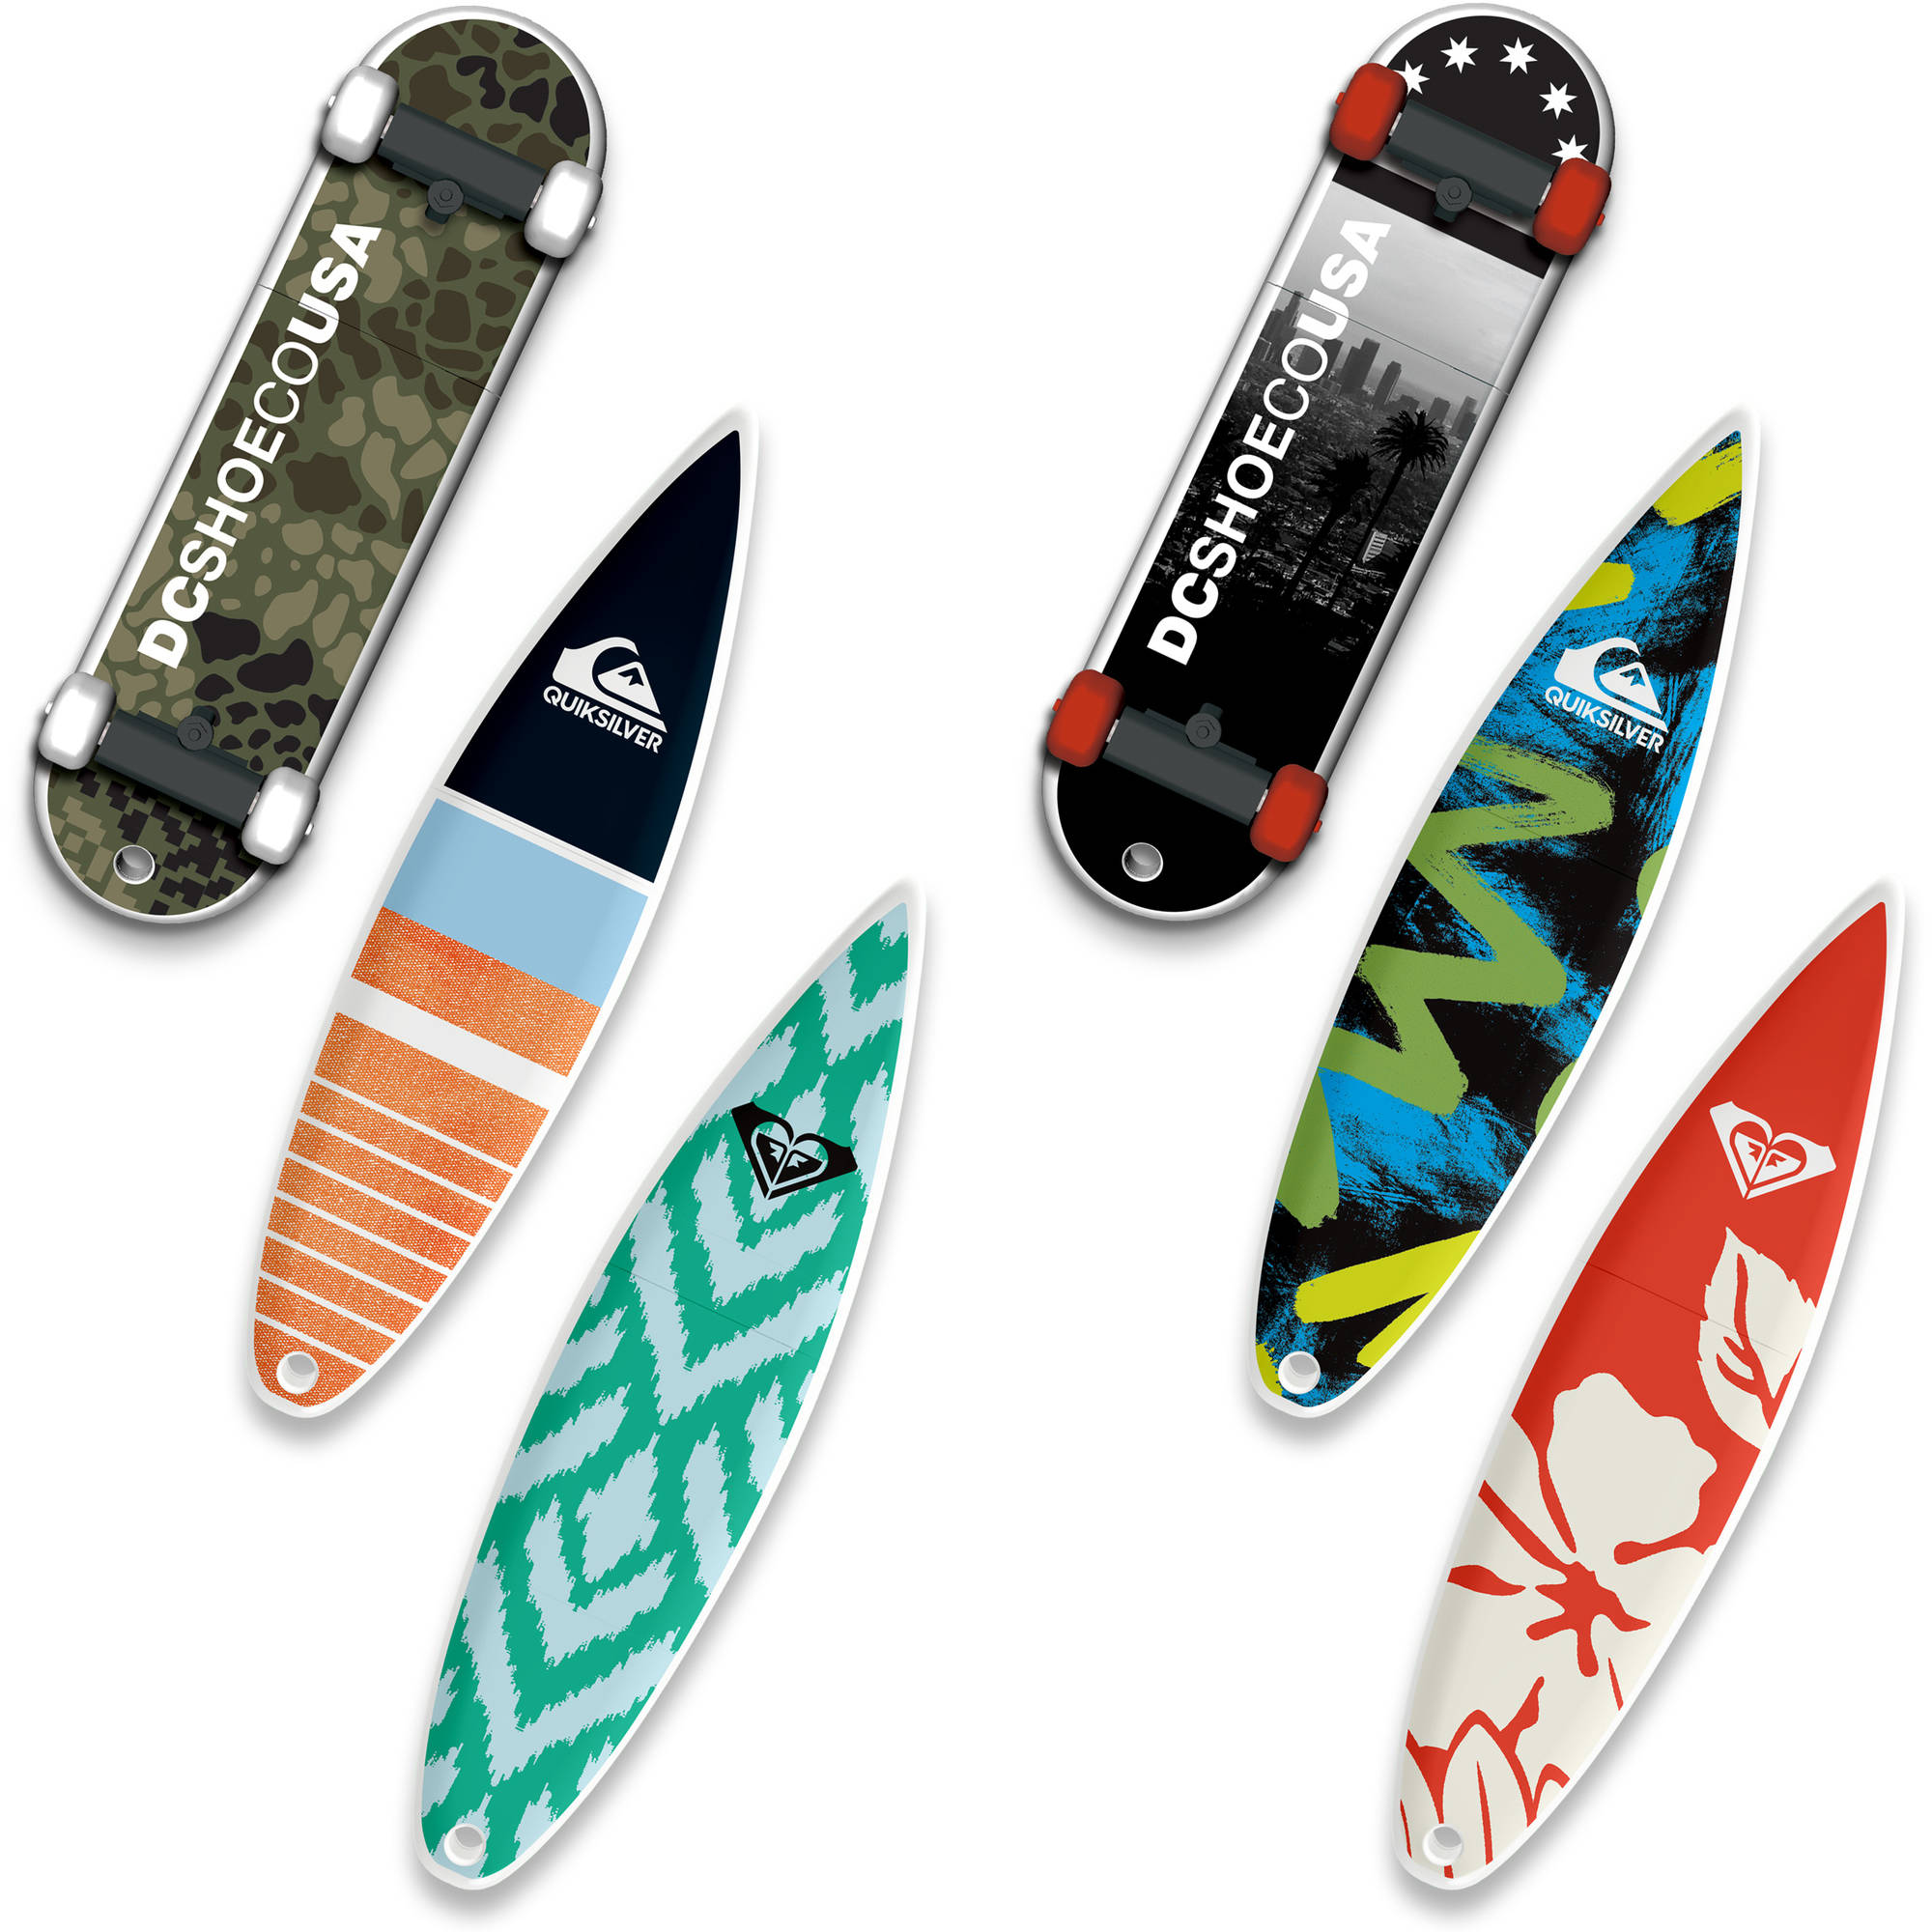 16GB EP ASD USB, DC Shoes SkateDrive, Quiksilver and Roxy SurfDrive, 6-Pack